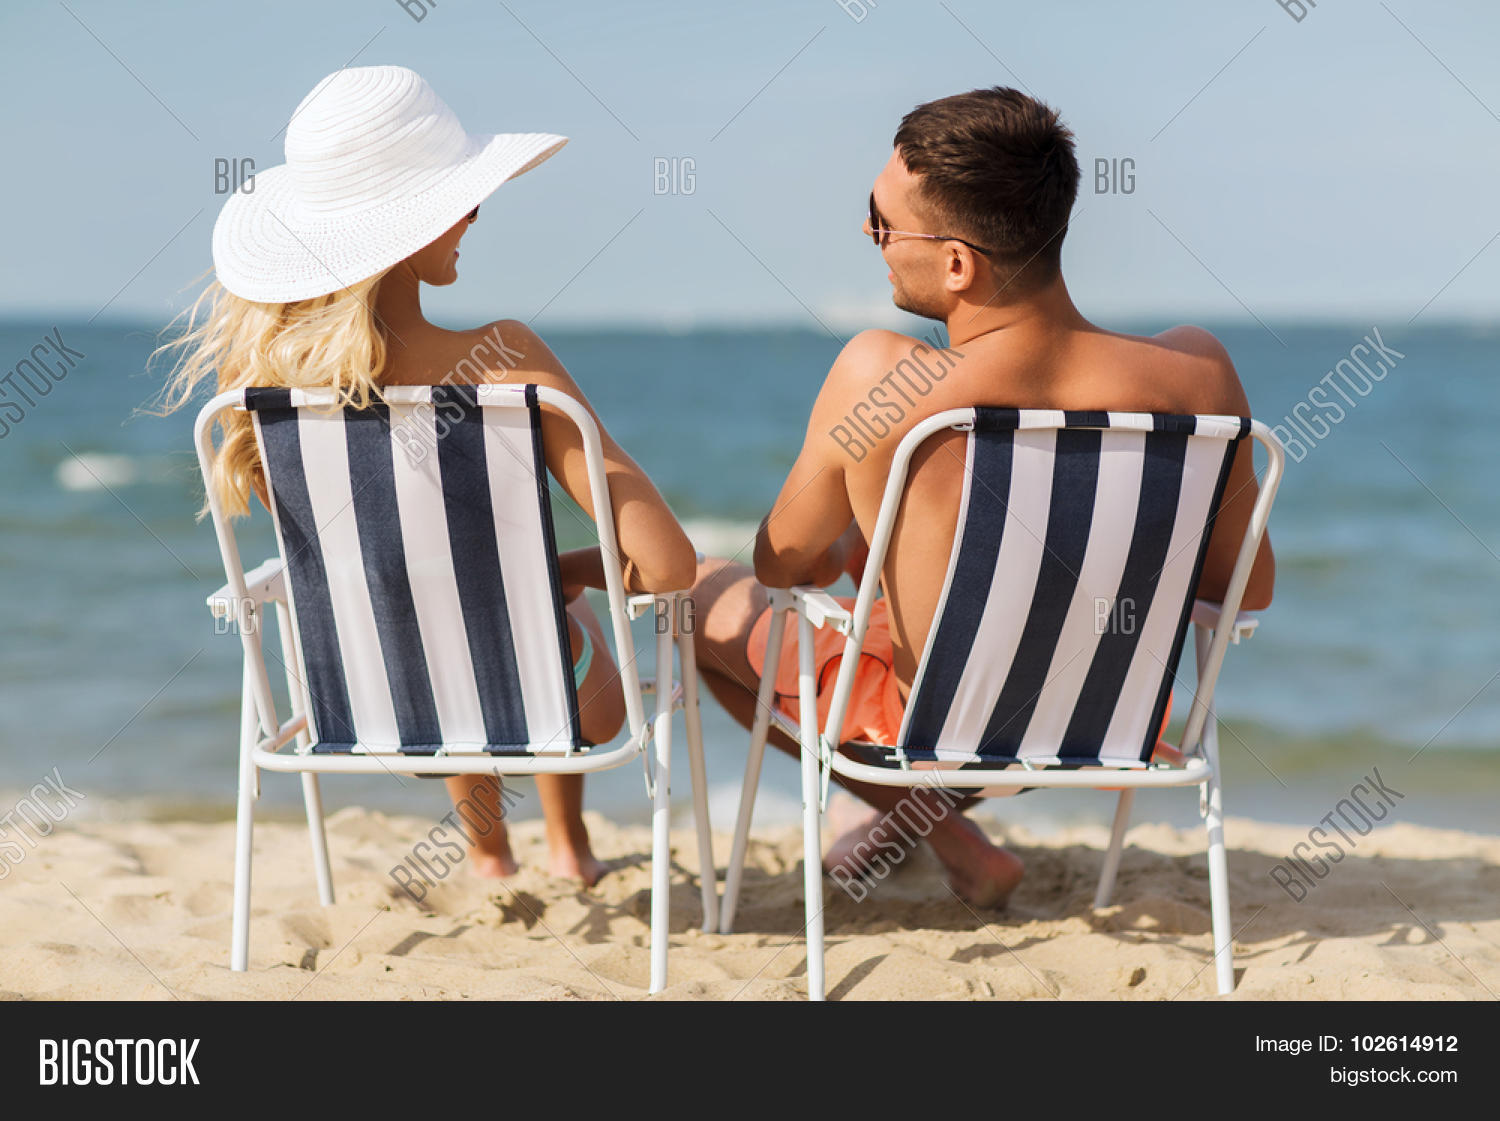 Sunbathing Chairs Love Travel Tourism Image Photo Free Trial Bigstock